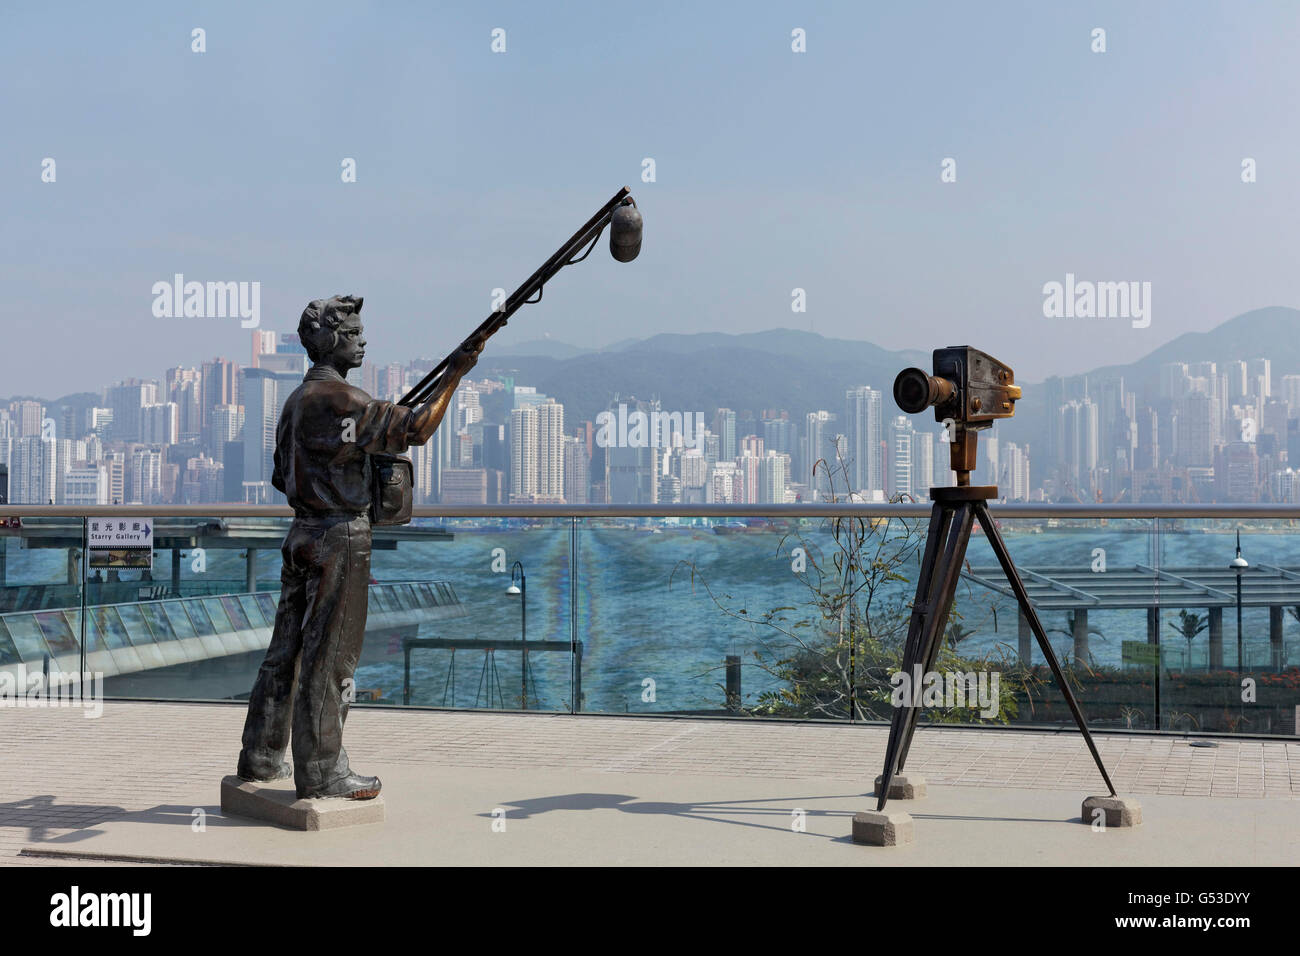 Sound assistant and film camera, bronze sculptures, Avenue of Stars with view of Hong Kong Island, Tsim Sha Tsui, - Stock Image